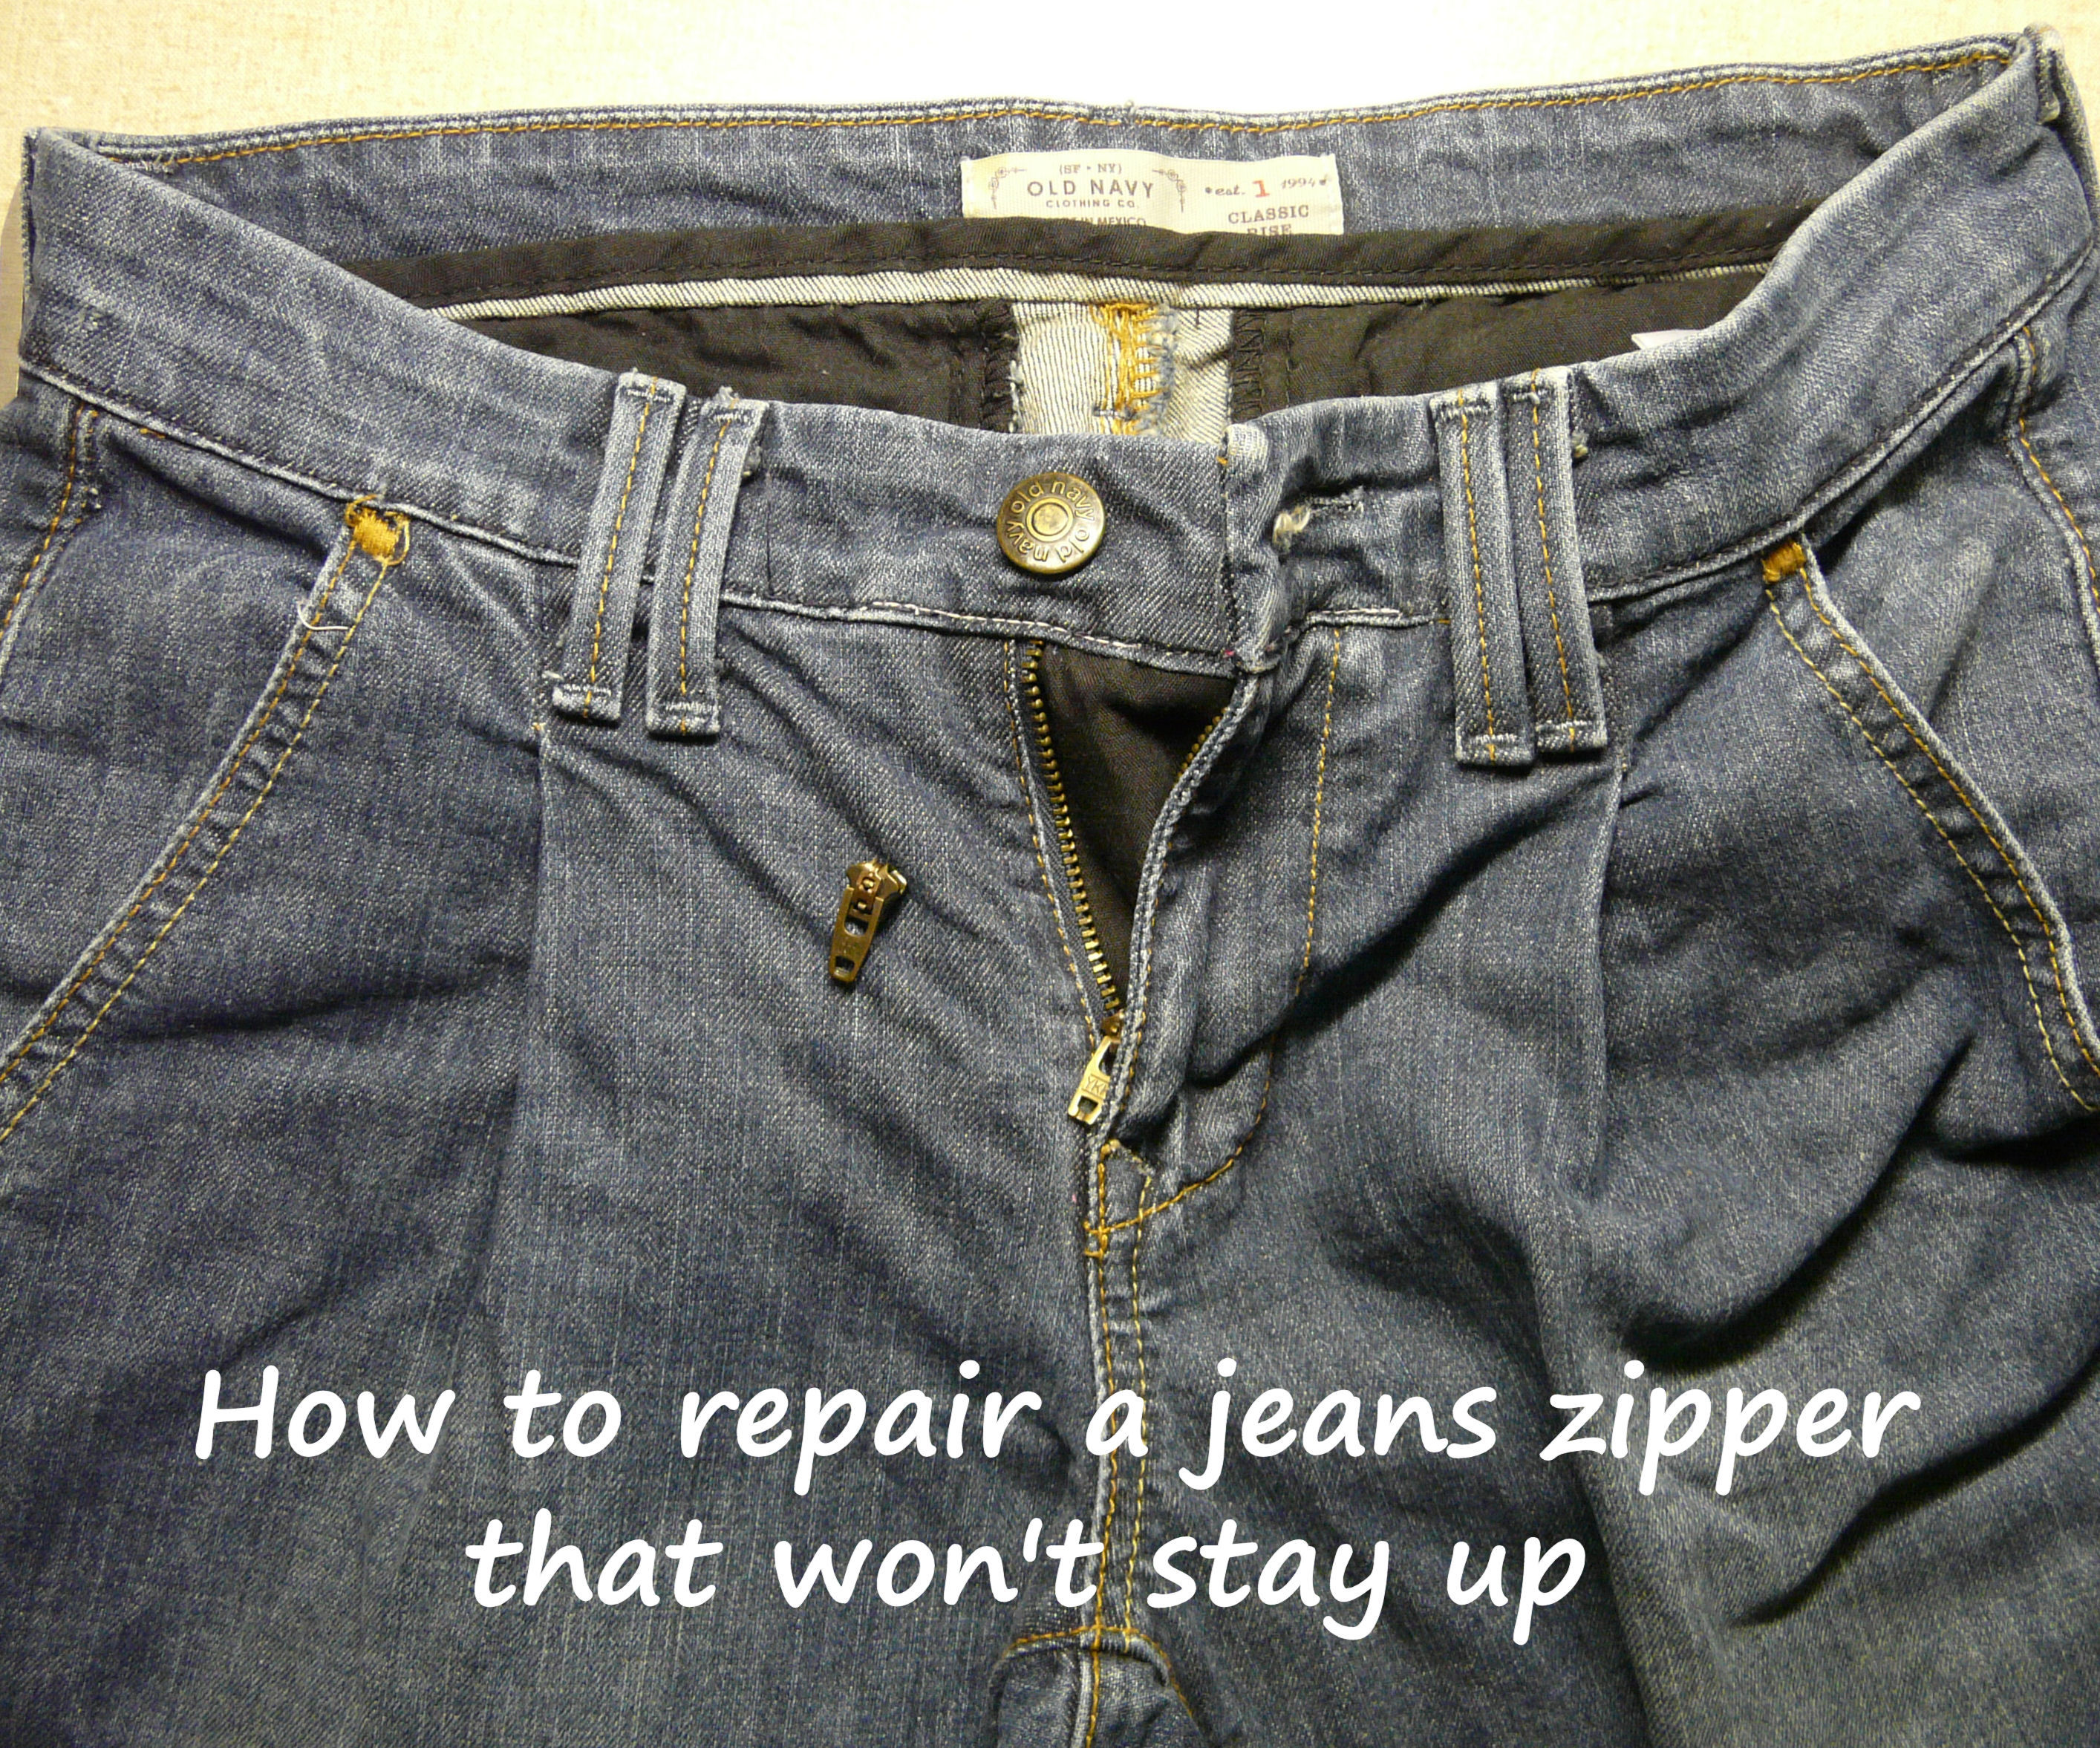 How to repair a jeans zipper that won't stay up